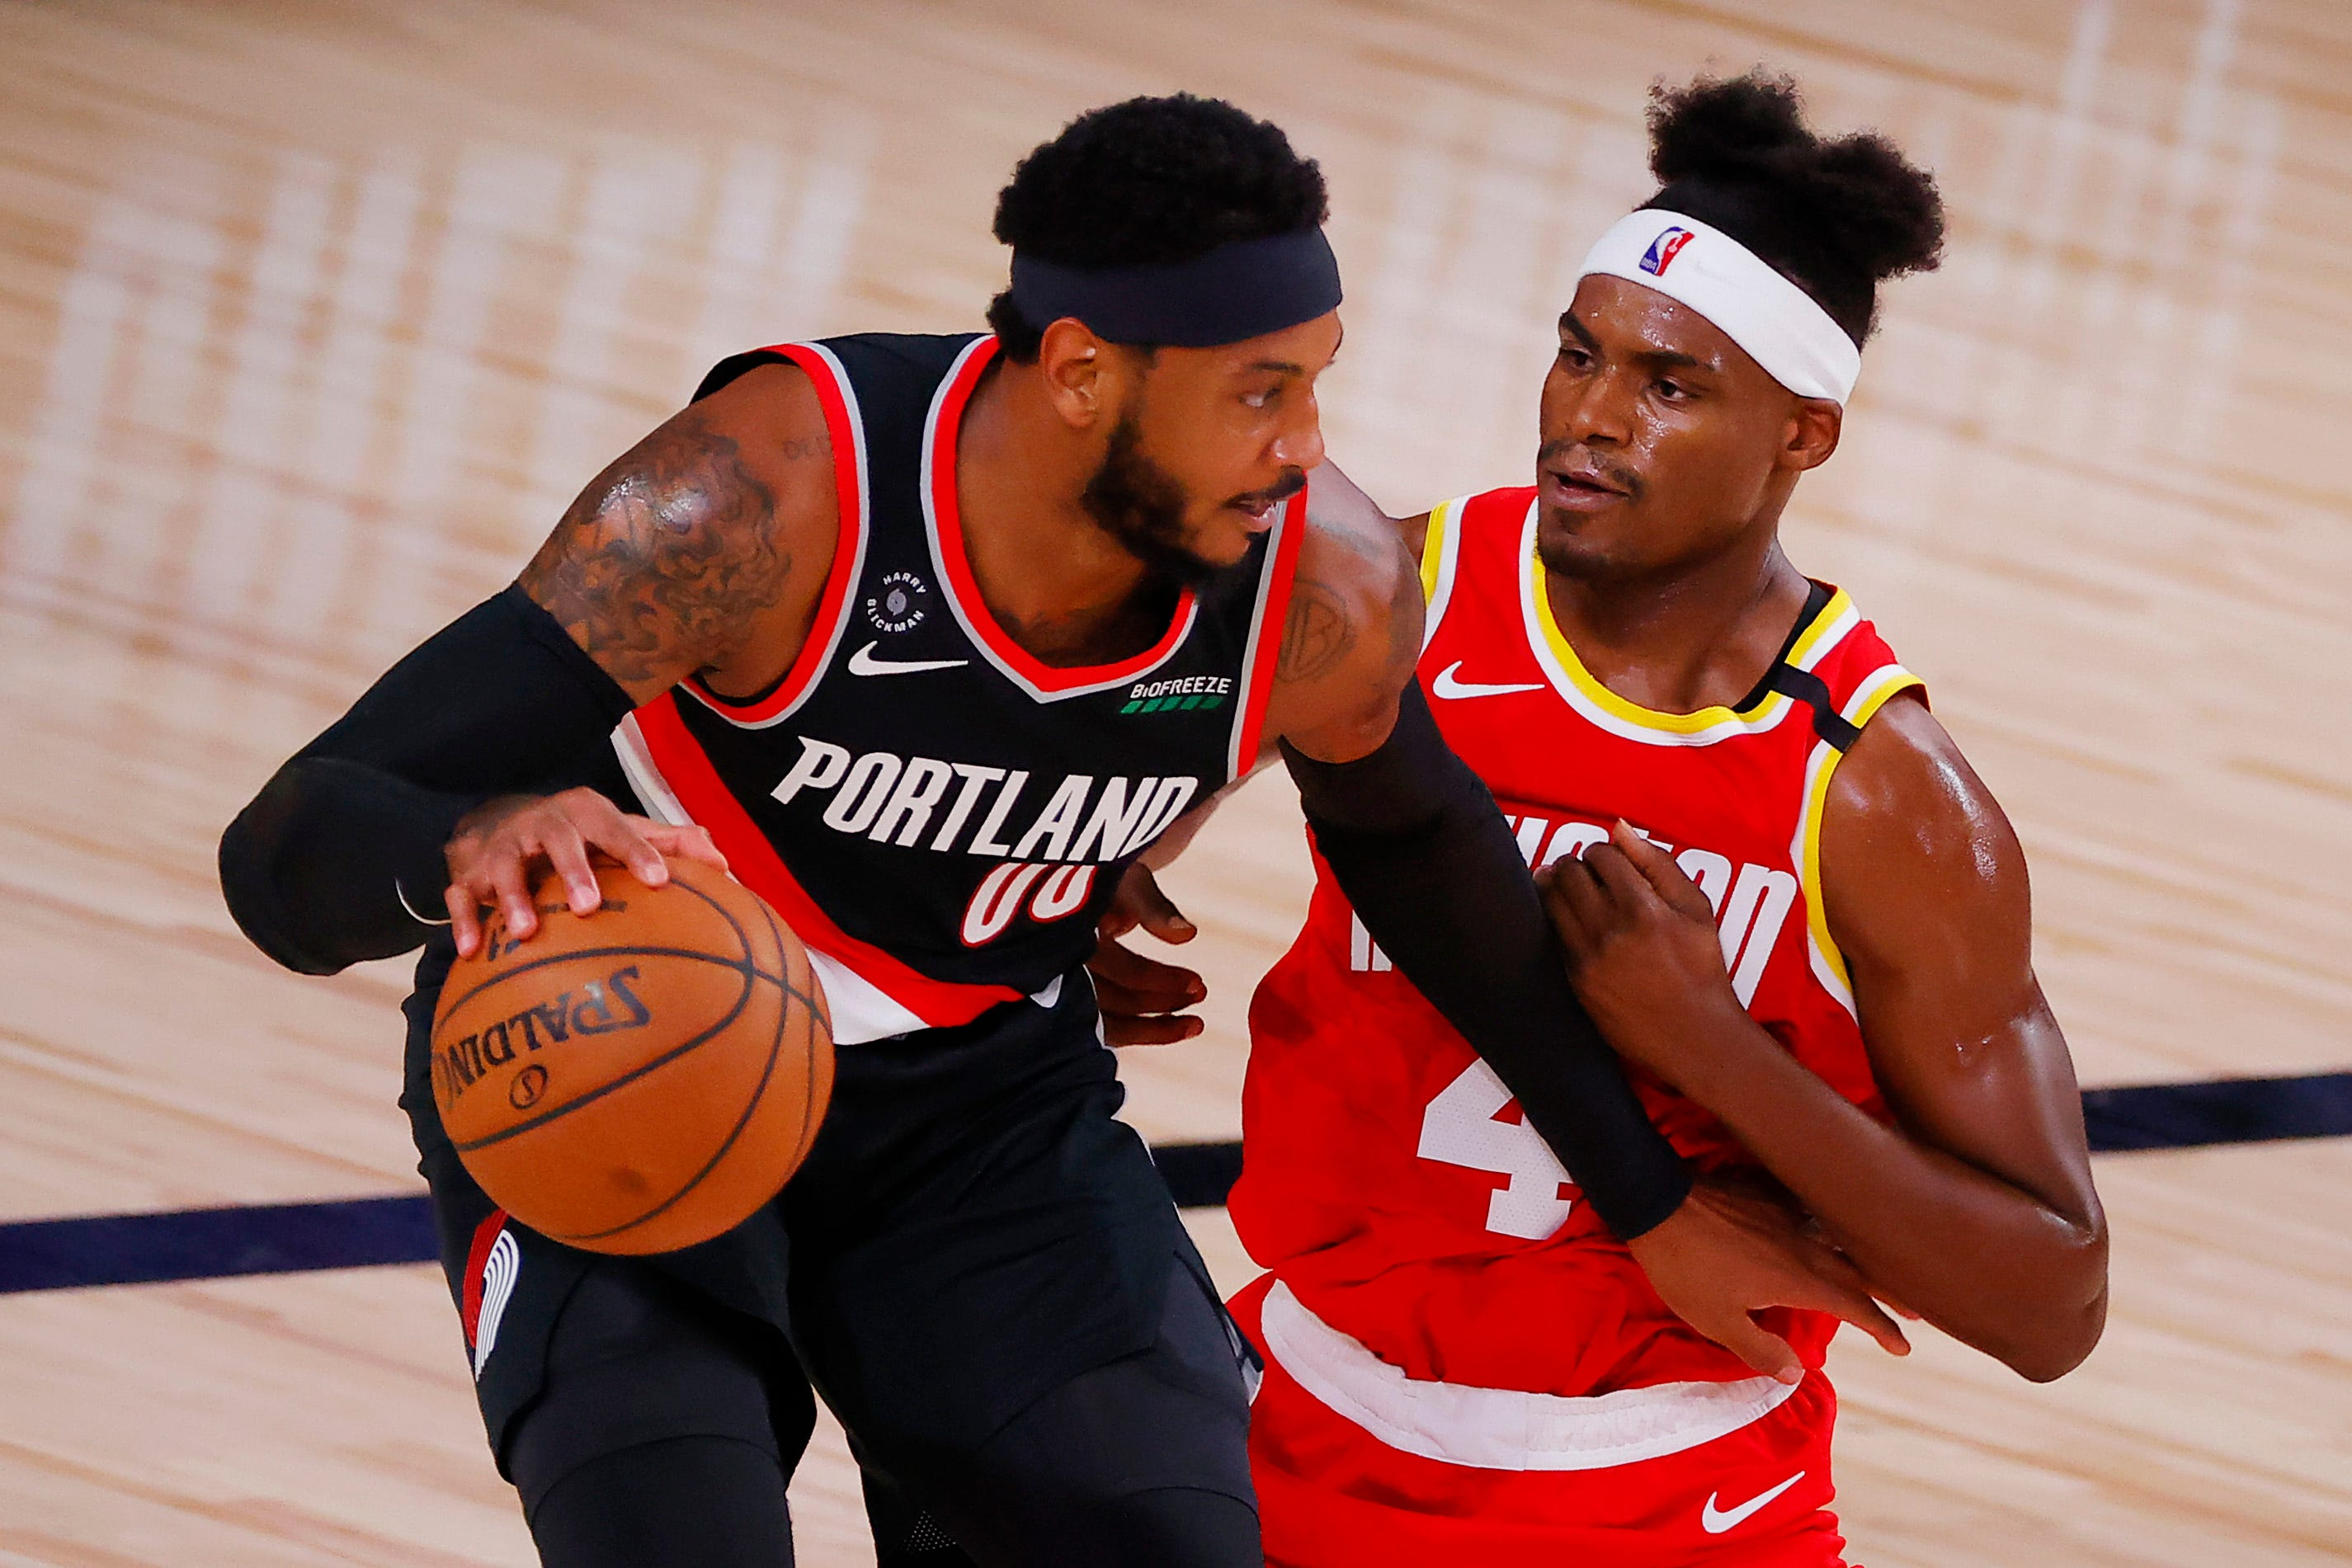 Opinion: Carmelo Anthony and Portland Trail Blazers have brought out the best in each other